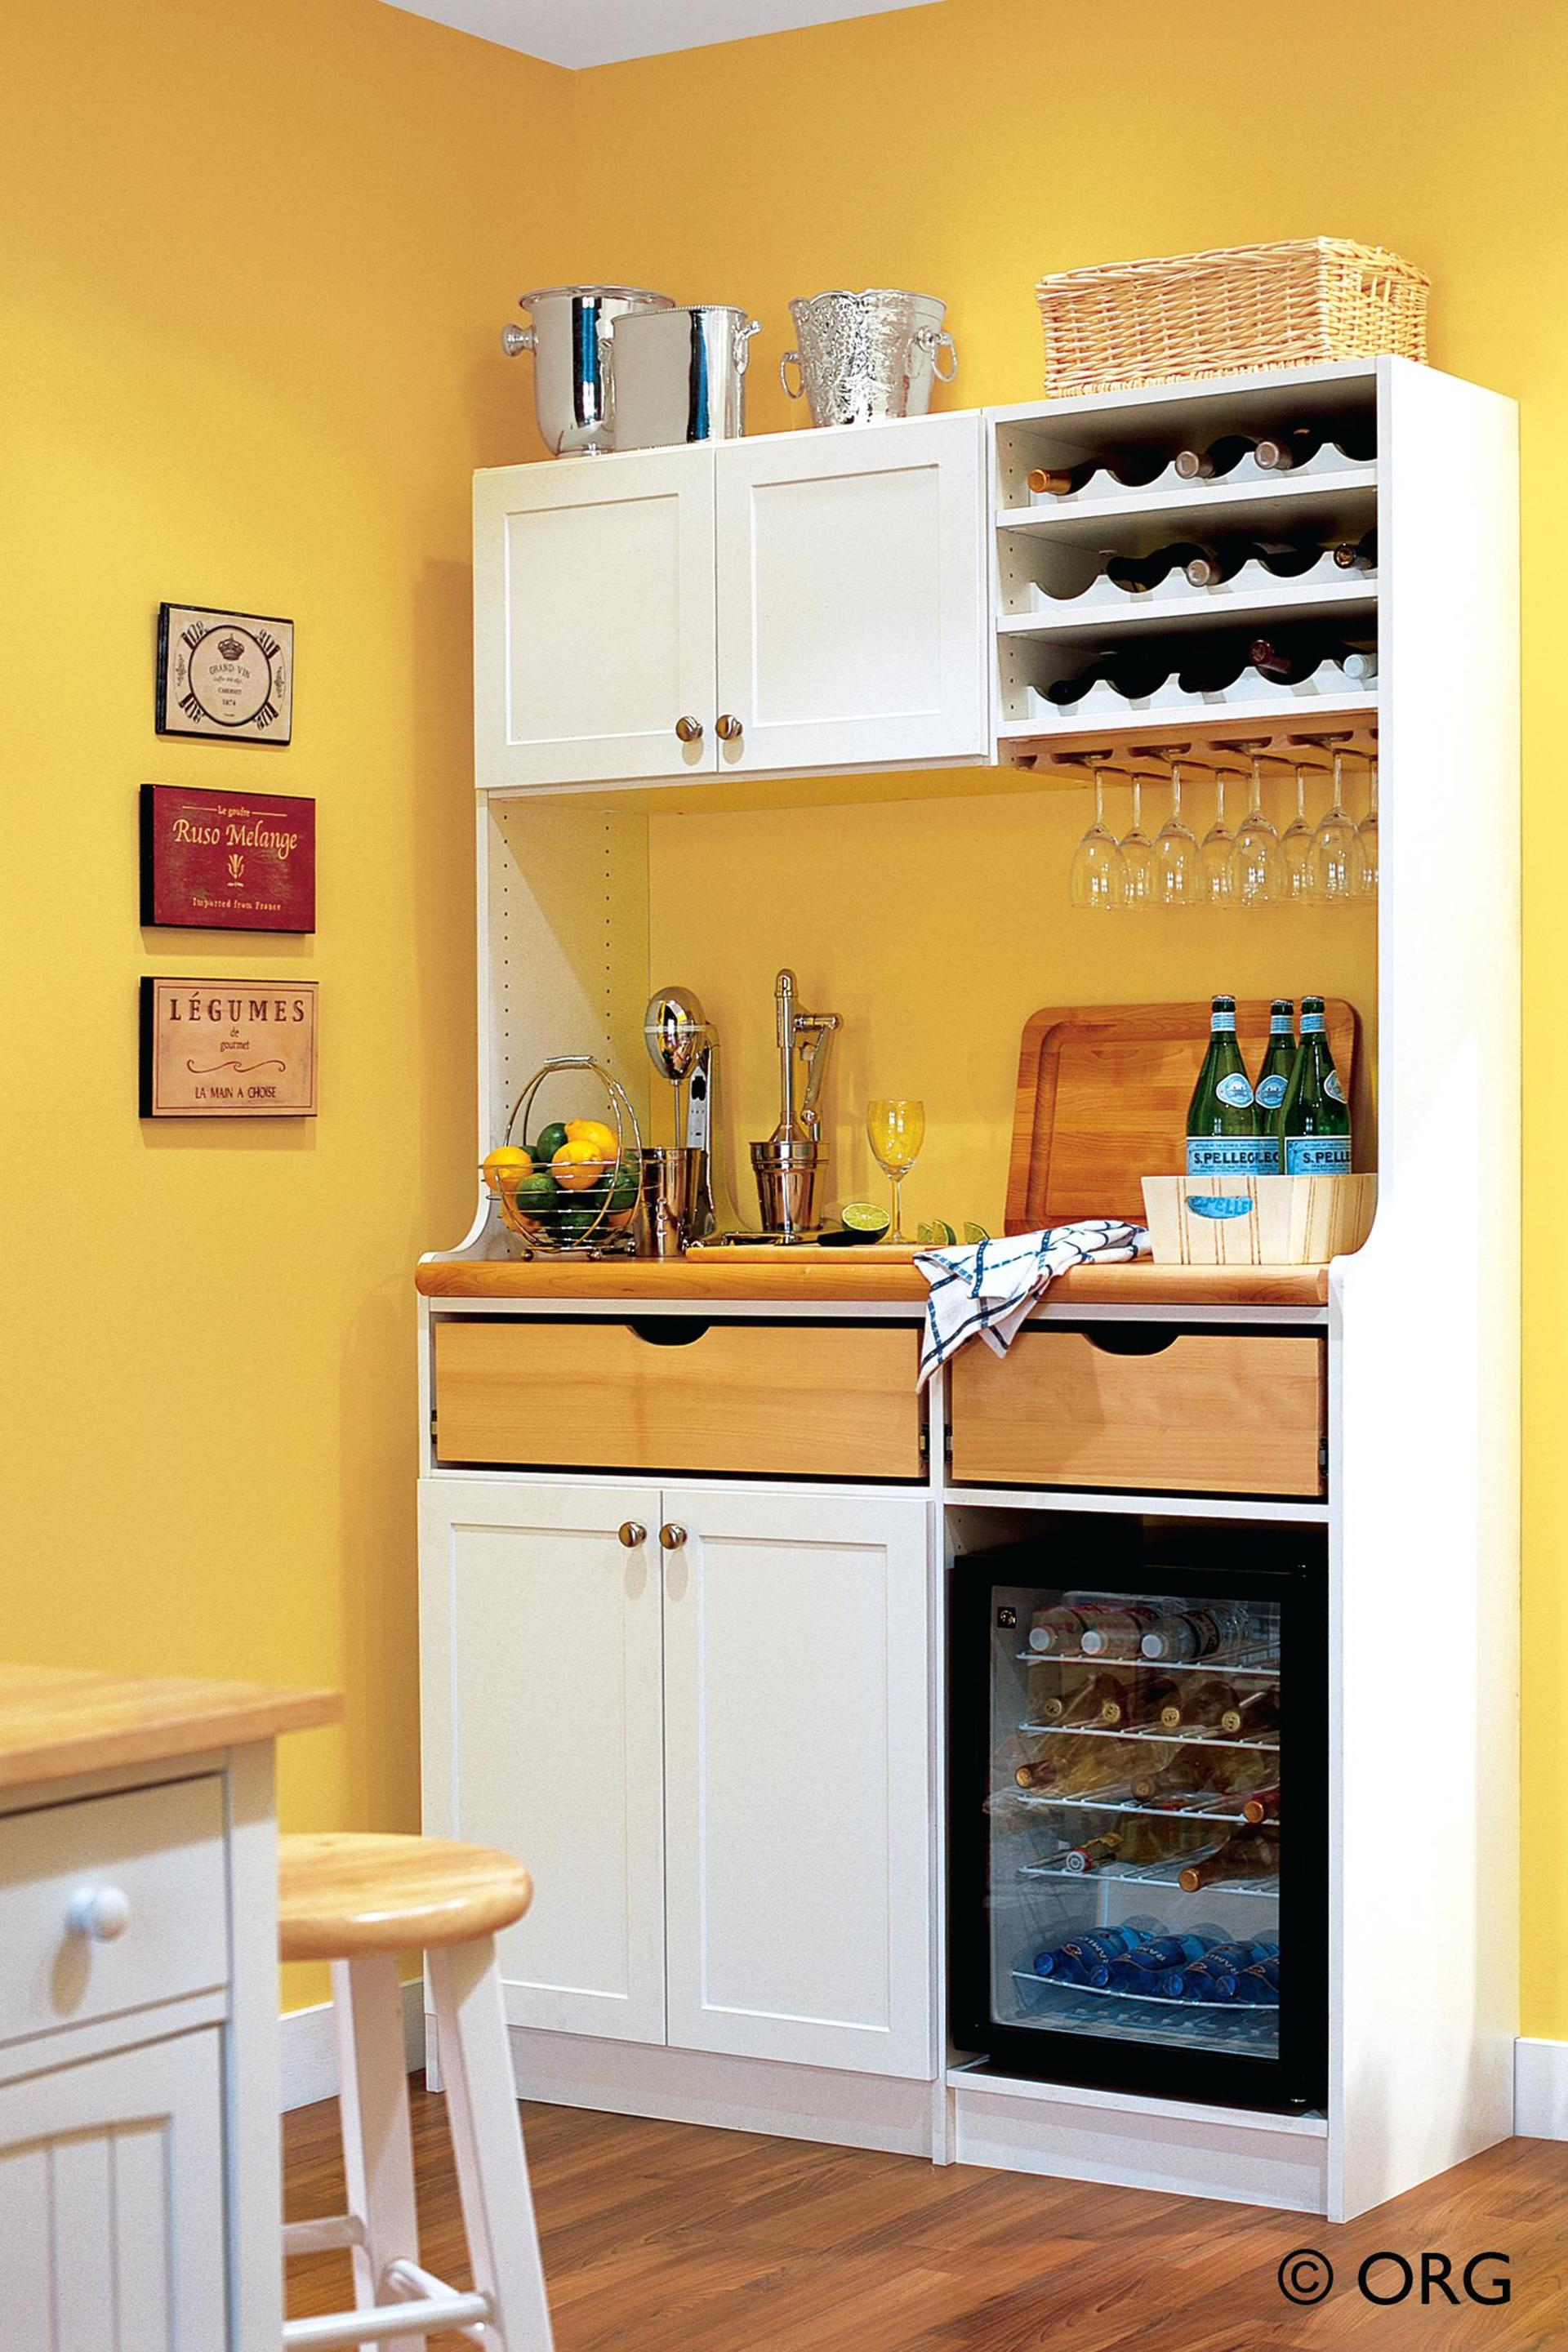 Best Cheap IKEA Cabinets Laundry Room Storage Ideas 20